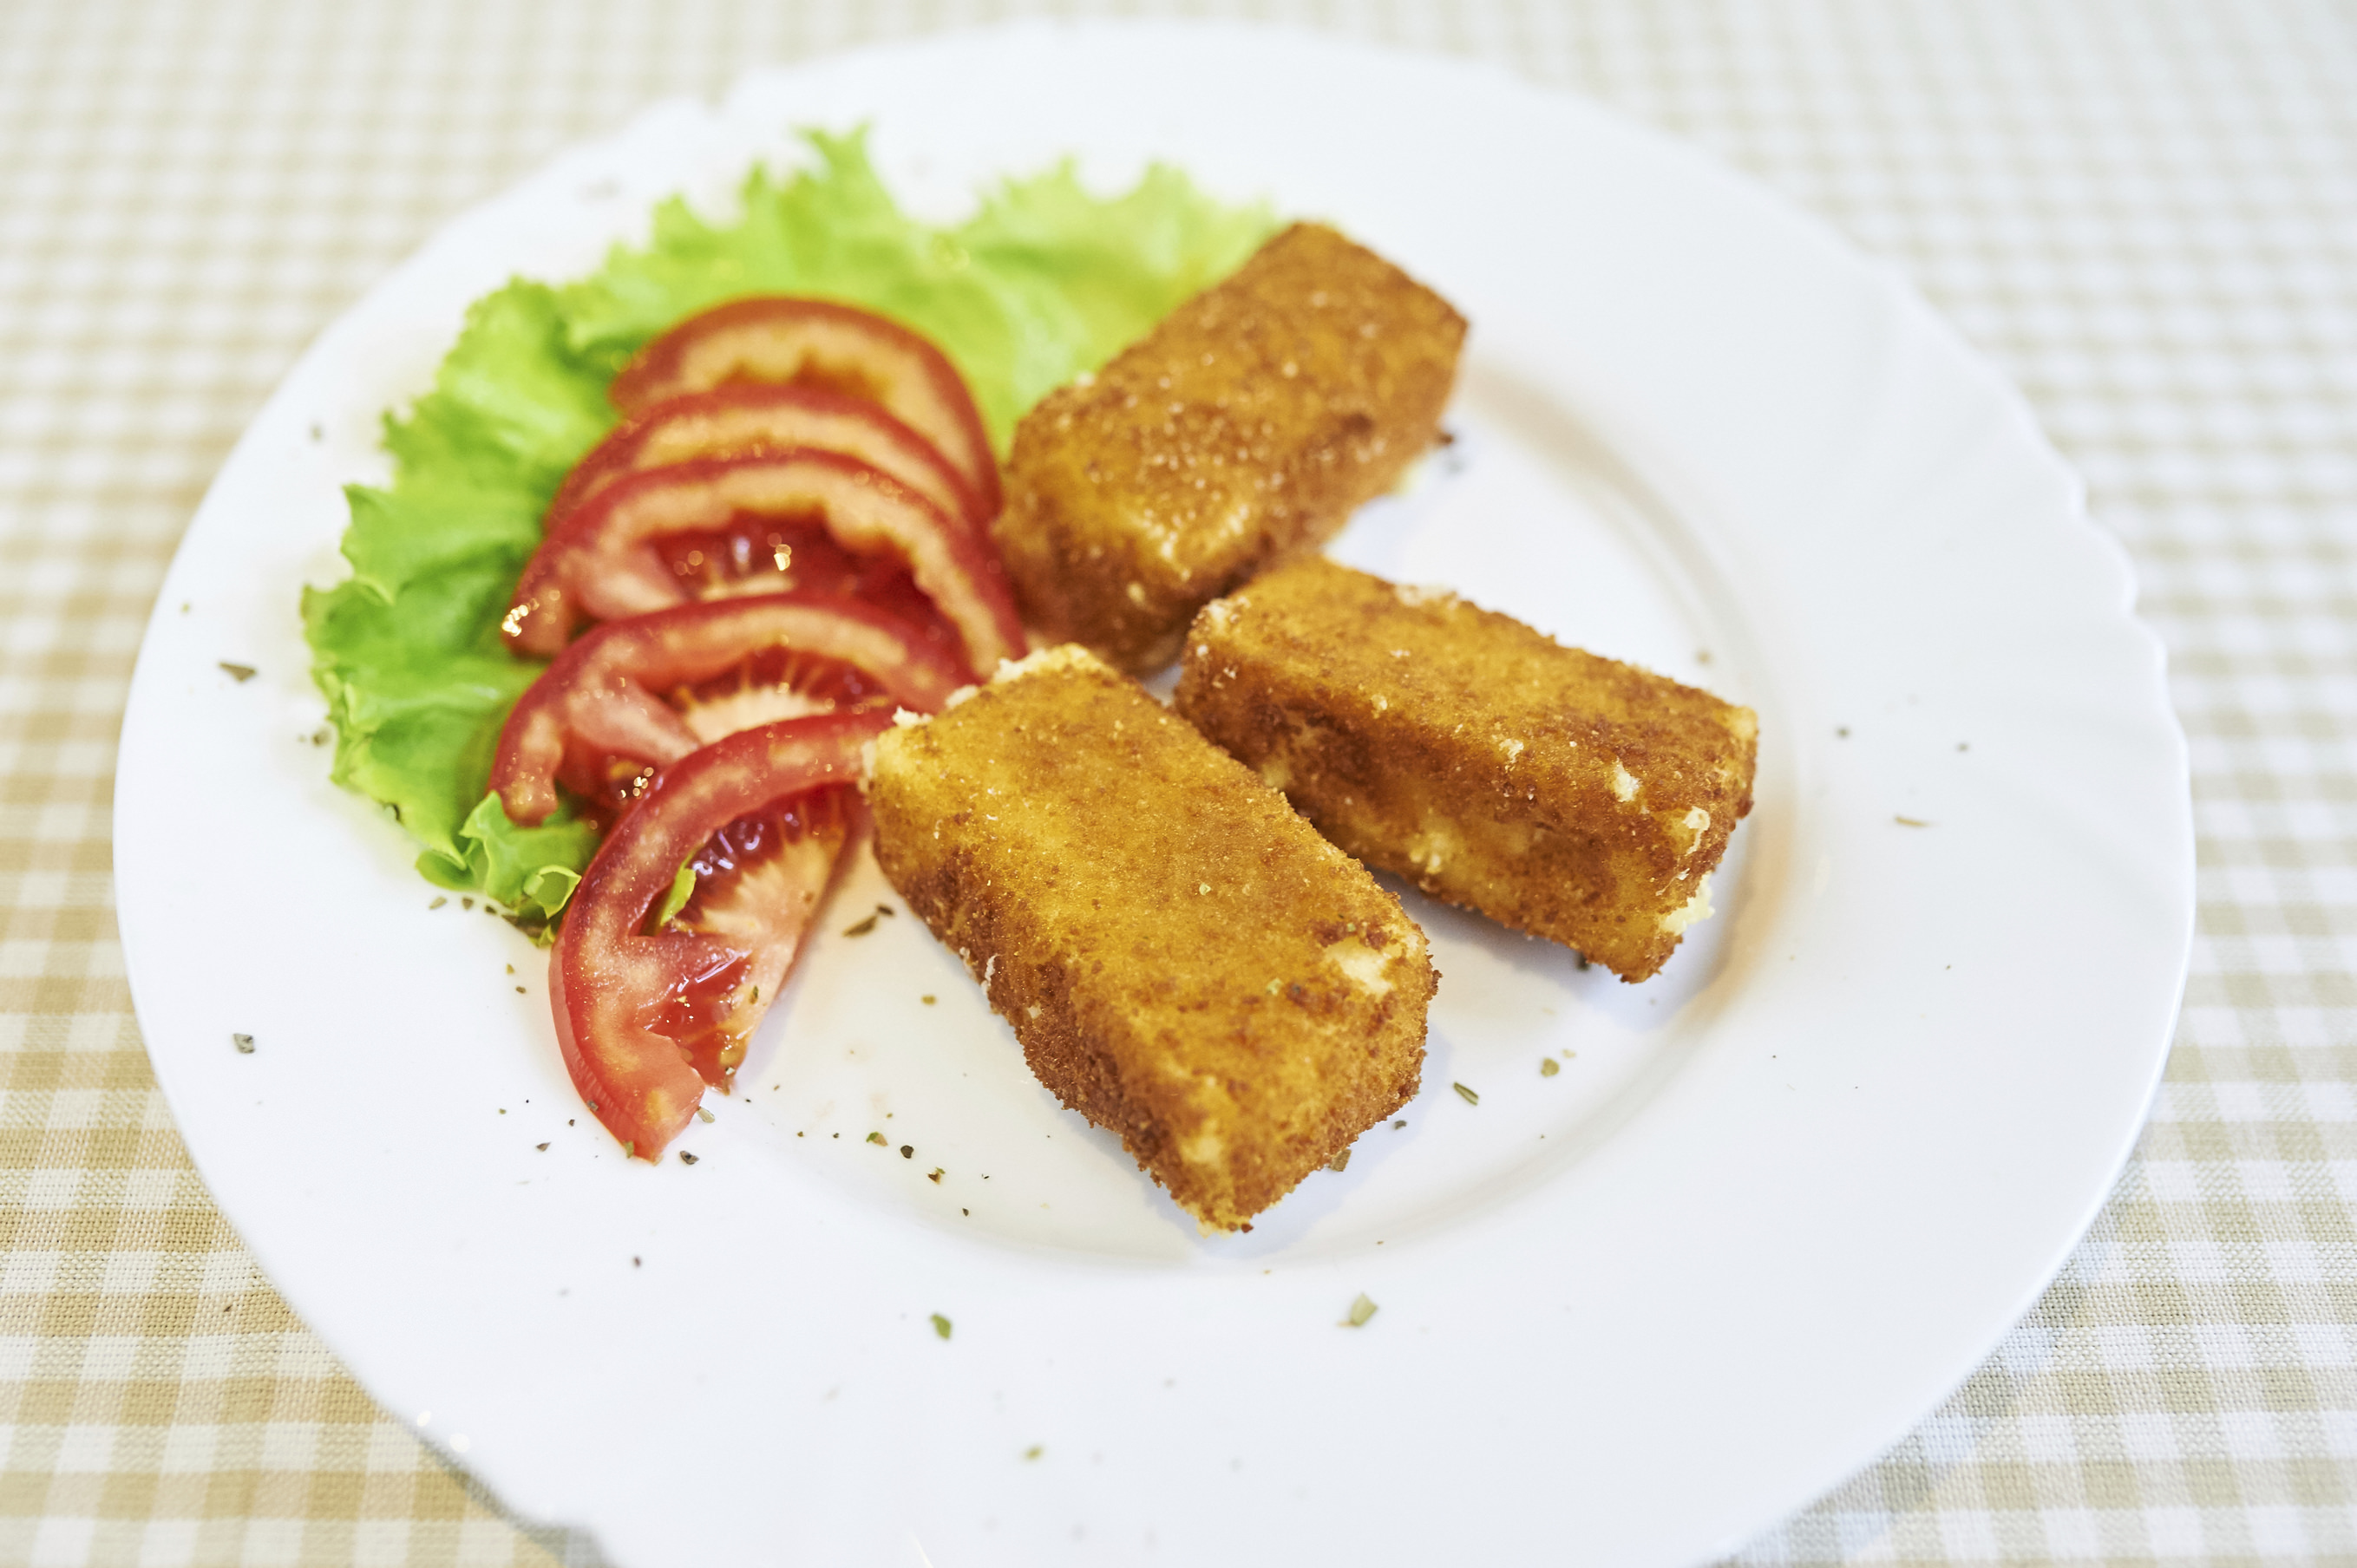 Cheese Pan With Tomato And Lettuce